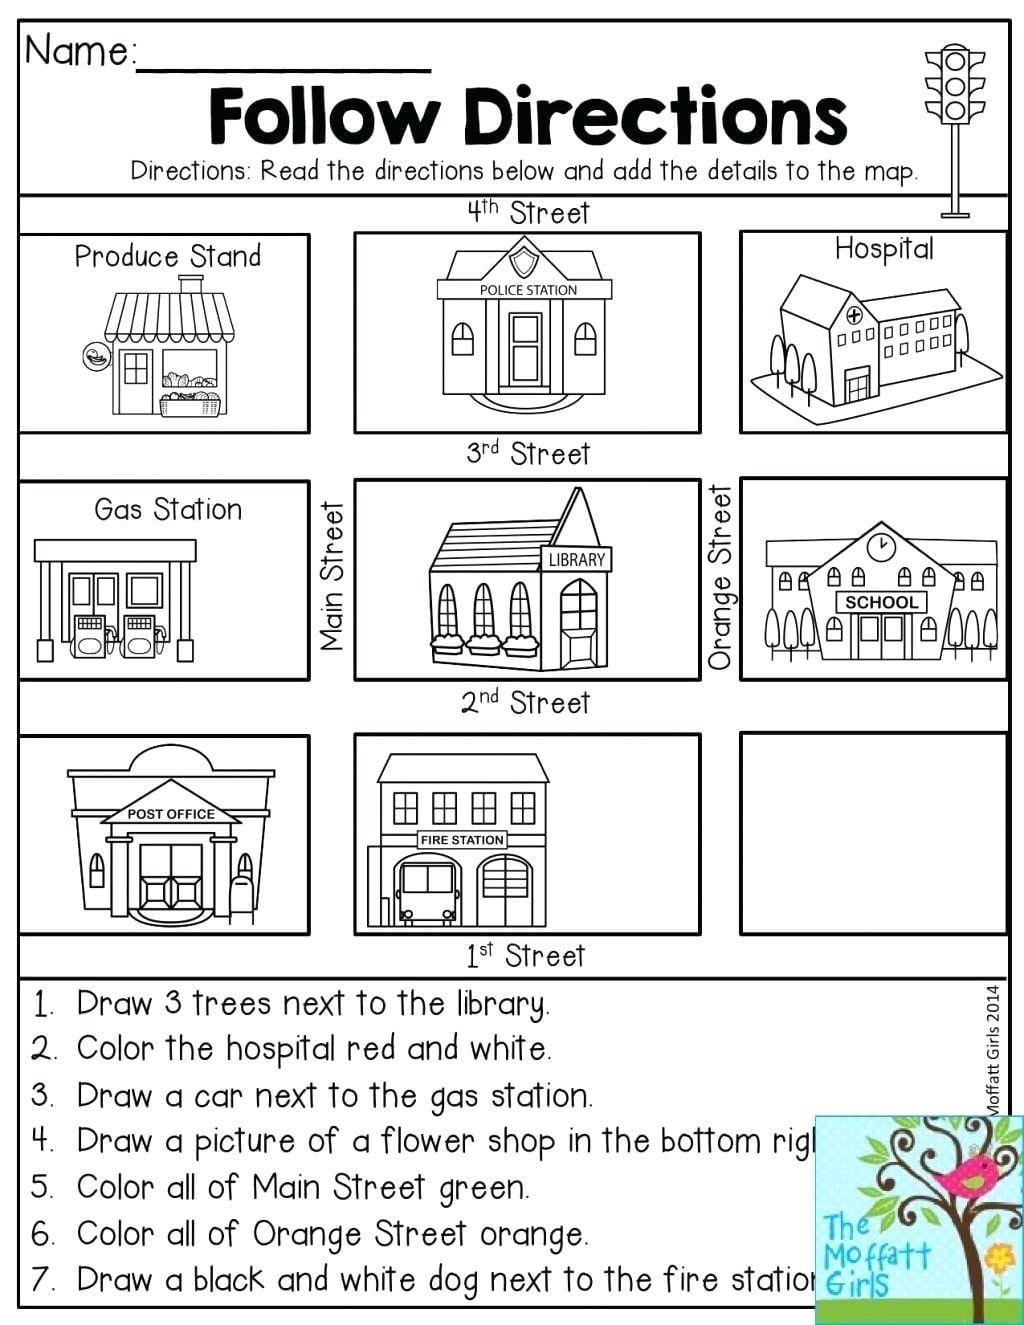 hight resolution of 8th Grade Map Skills Worksheets   Printable Worksheets and Activities for  Teachers